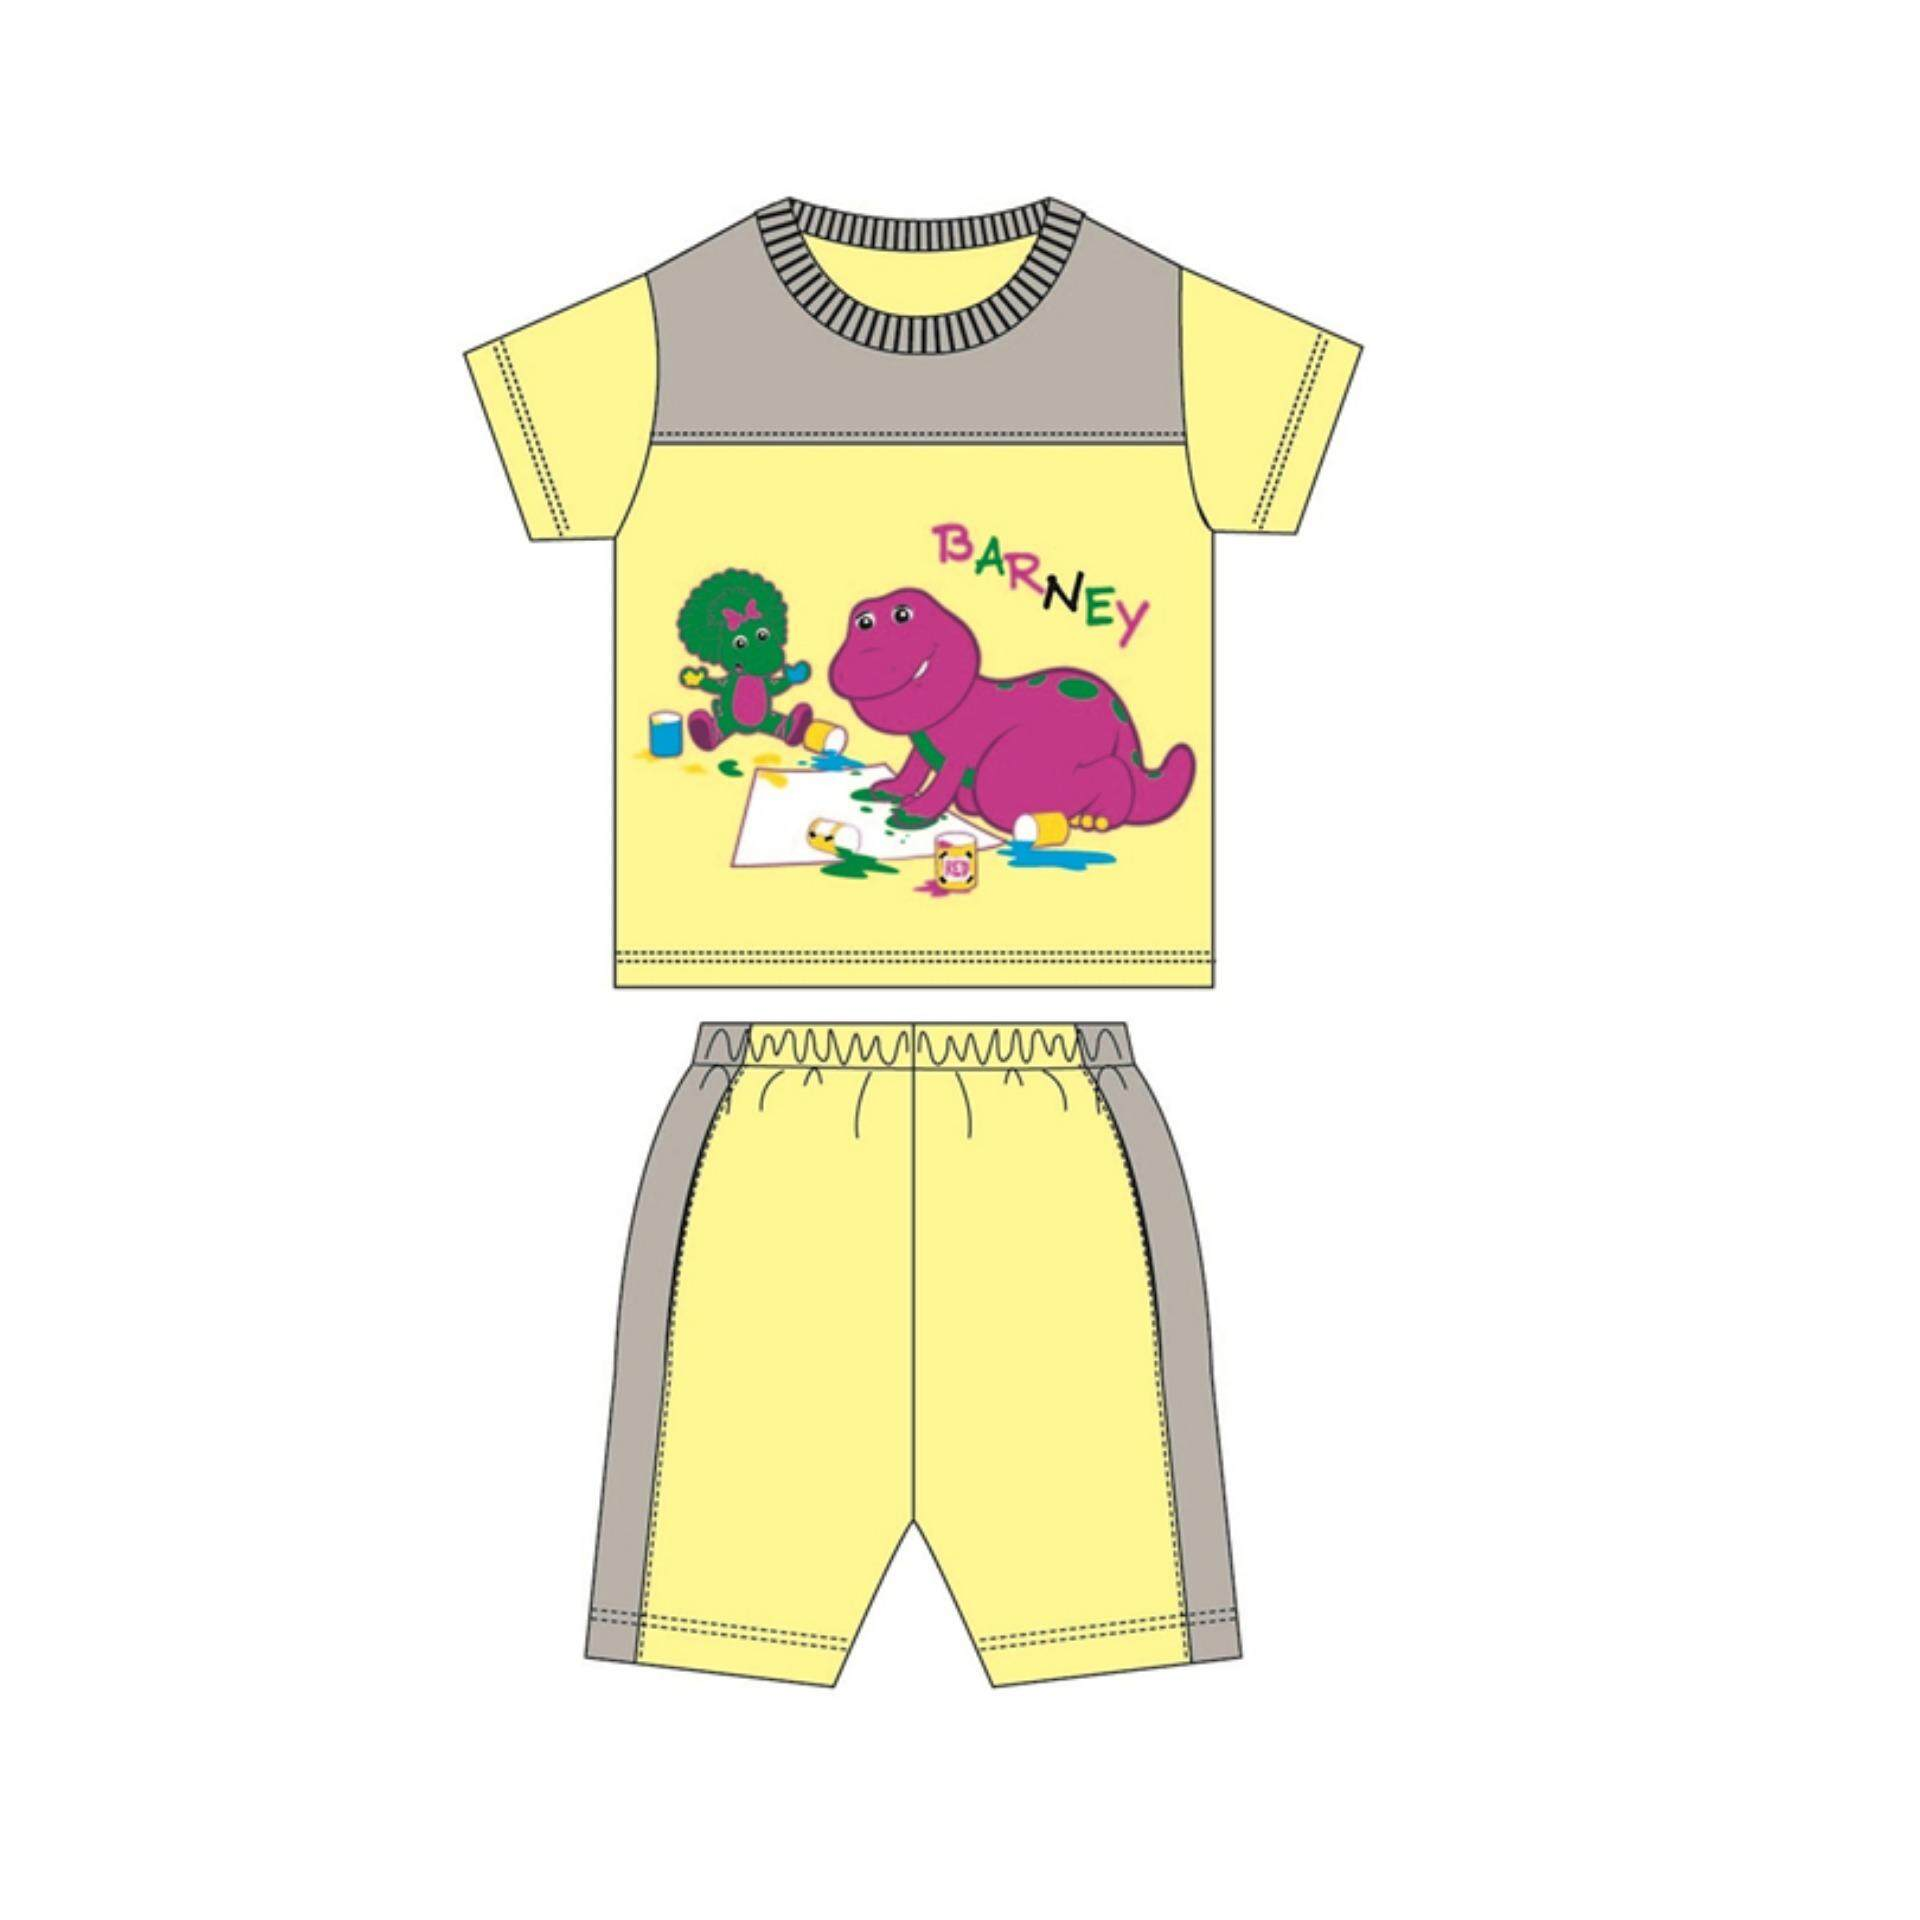 Barney Suits 100% Cotton 1yrs to 3yrs - Yellow And Melange Colour